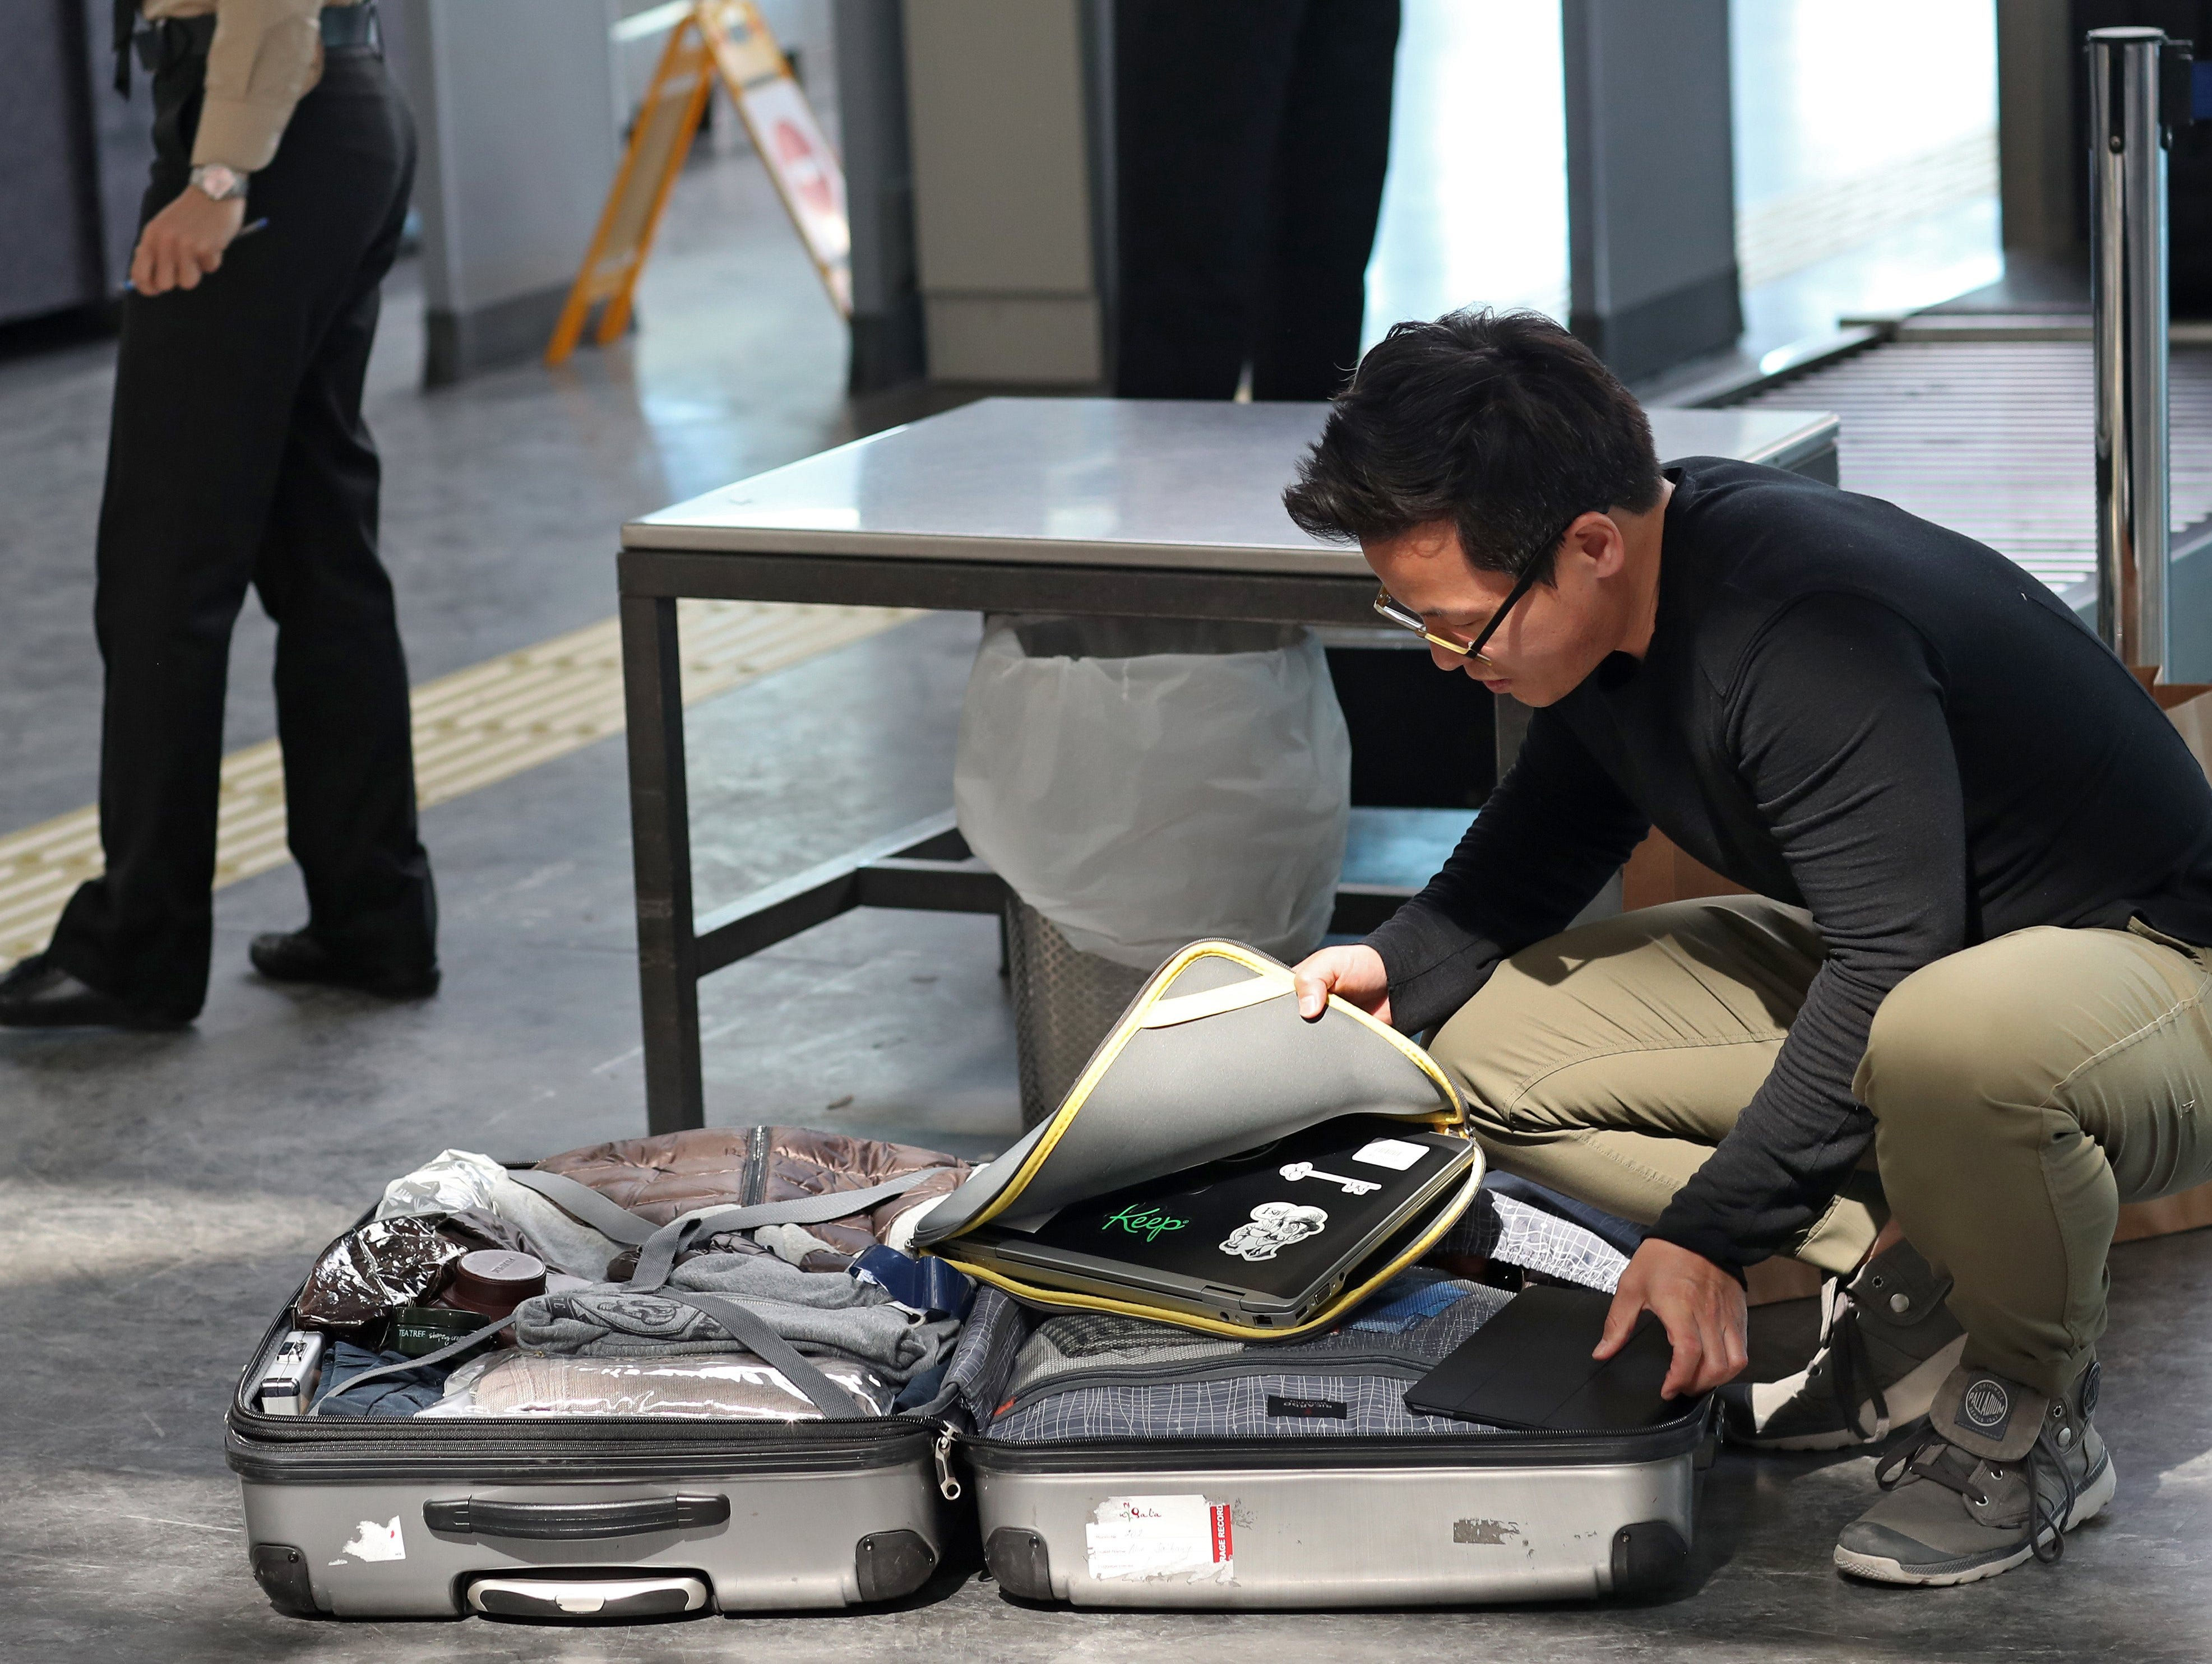 epa05997395 (FILE) - Passengers open their luggage and show their electronic equipment at security point at the Ataturk Airport, in Istanbul, Turkey, 22 March 2017 (reissued 29 May 2017). According to reports from 29 May 2017, US Homeland authorities are considering to expand a general laptop ban on all international flights to and from the USA.  EPA/SEDAT SUNA *** Local Caption *** 53402871 ORG XMIT: SDT01